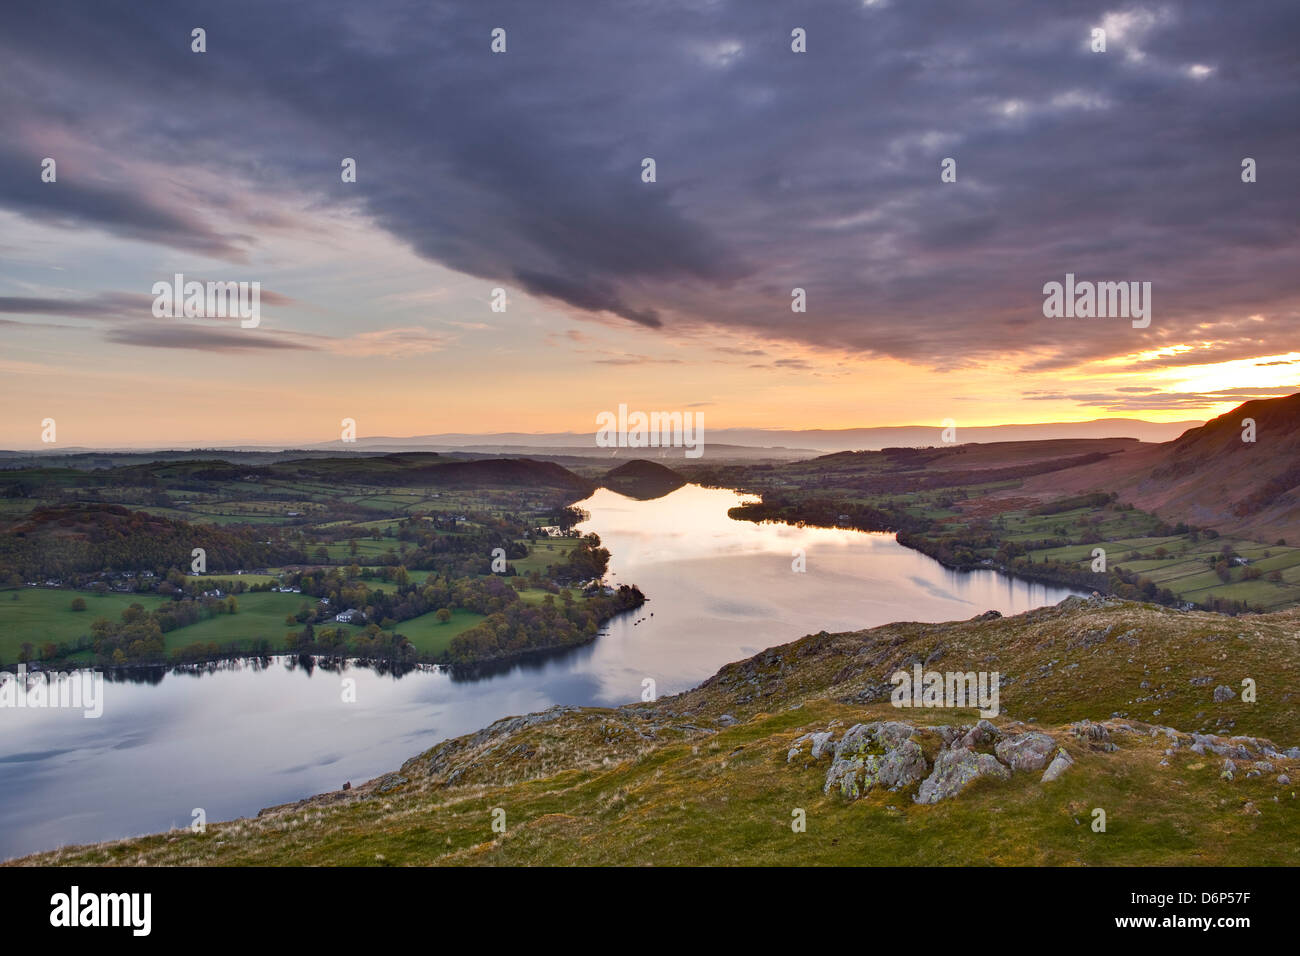 Ullswater in the Lake District National Park, Cumbria, England, United Kingdom, Europe - Stock Image